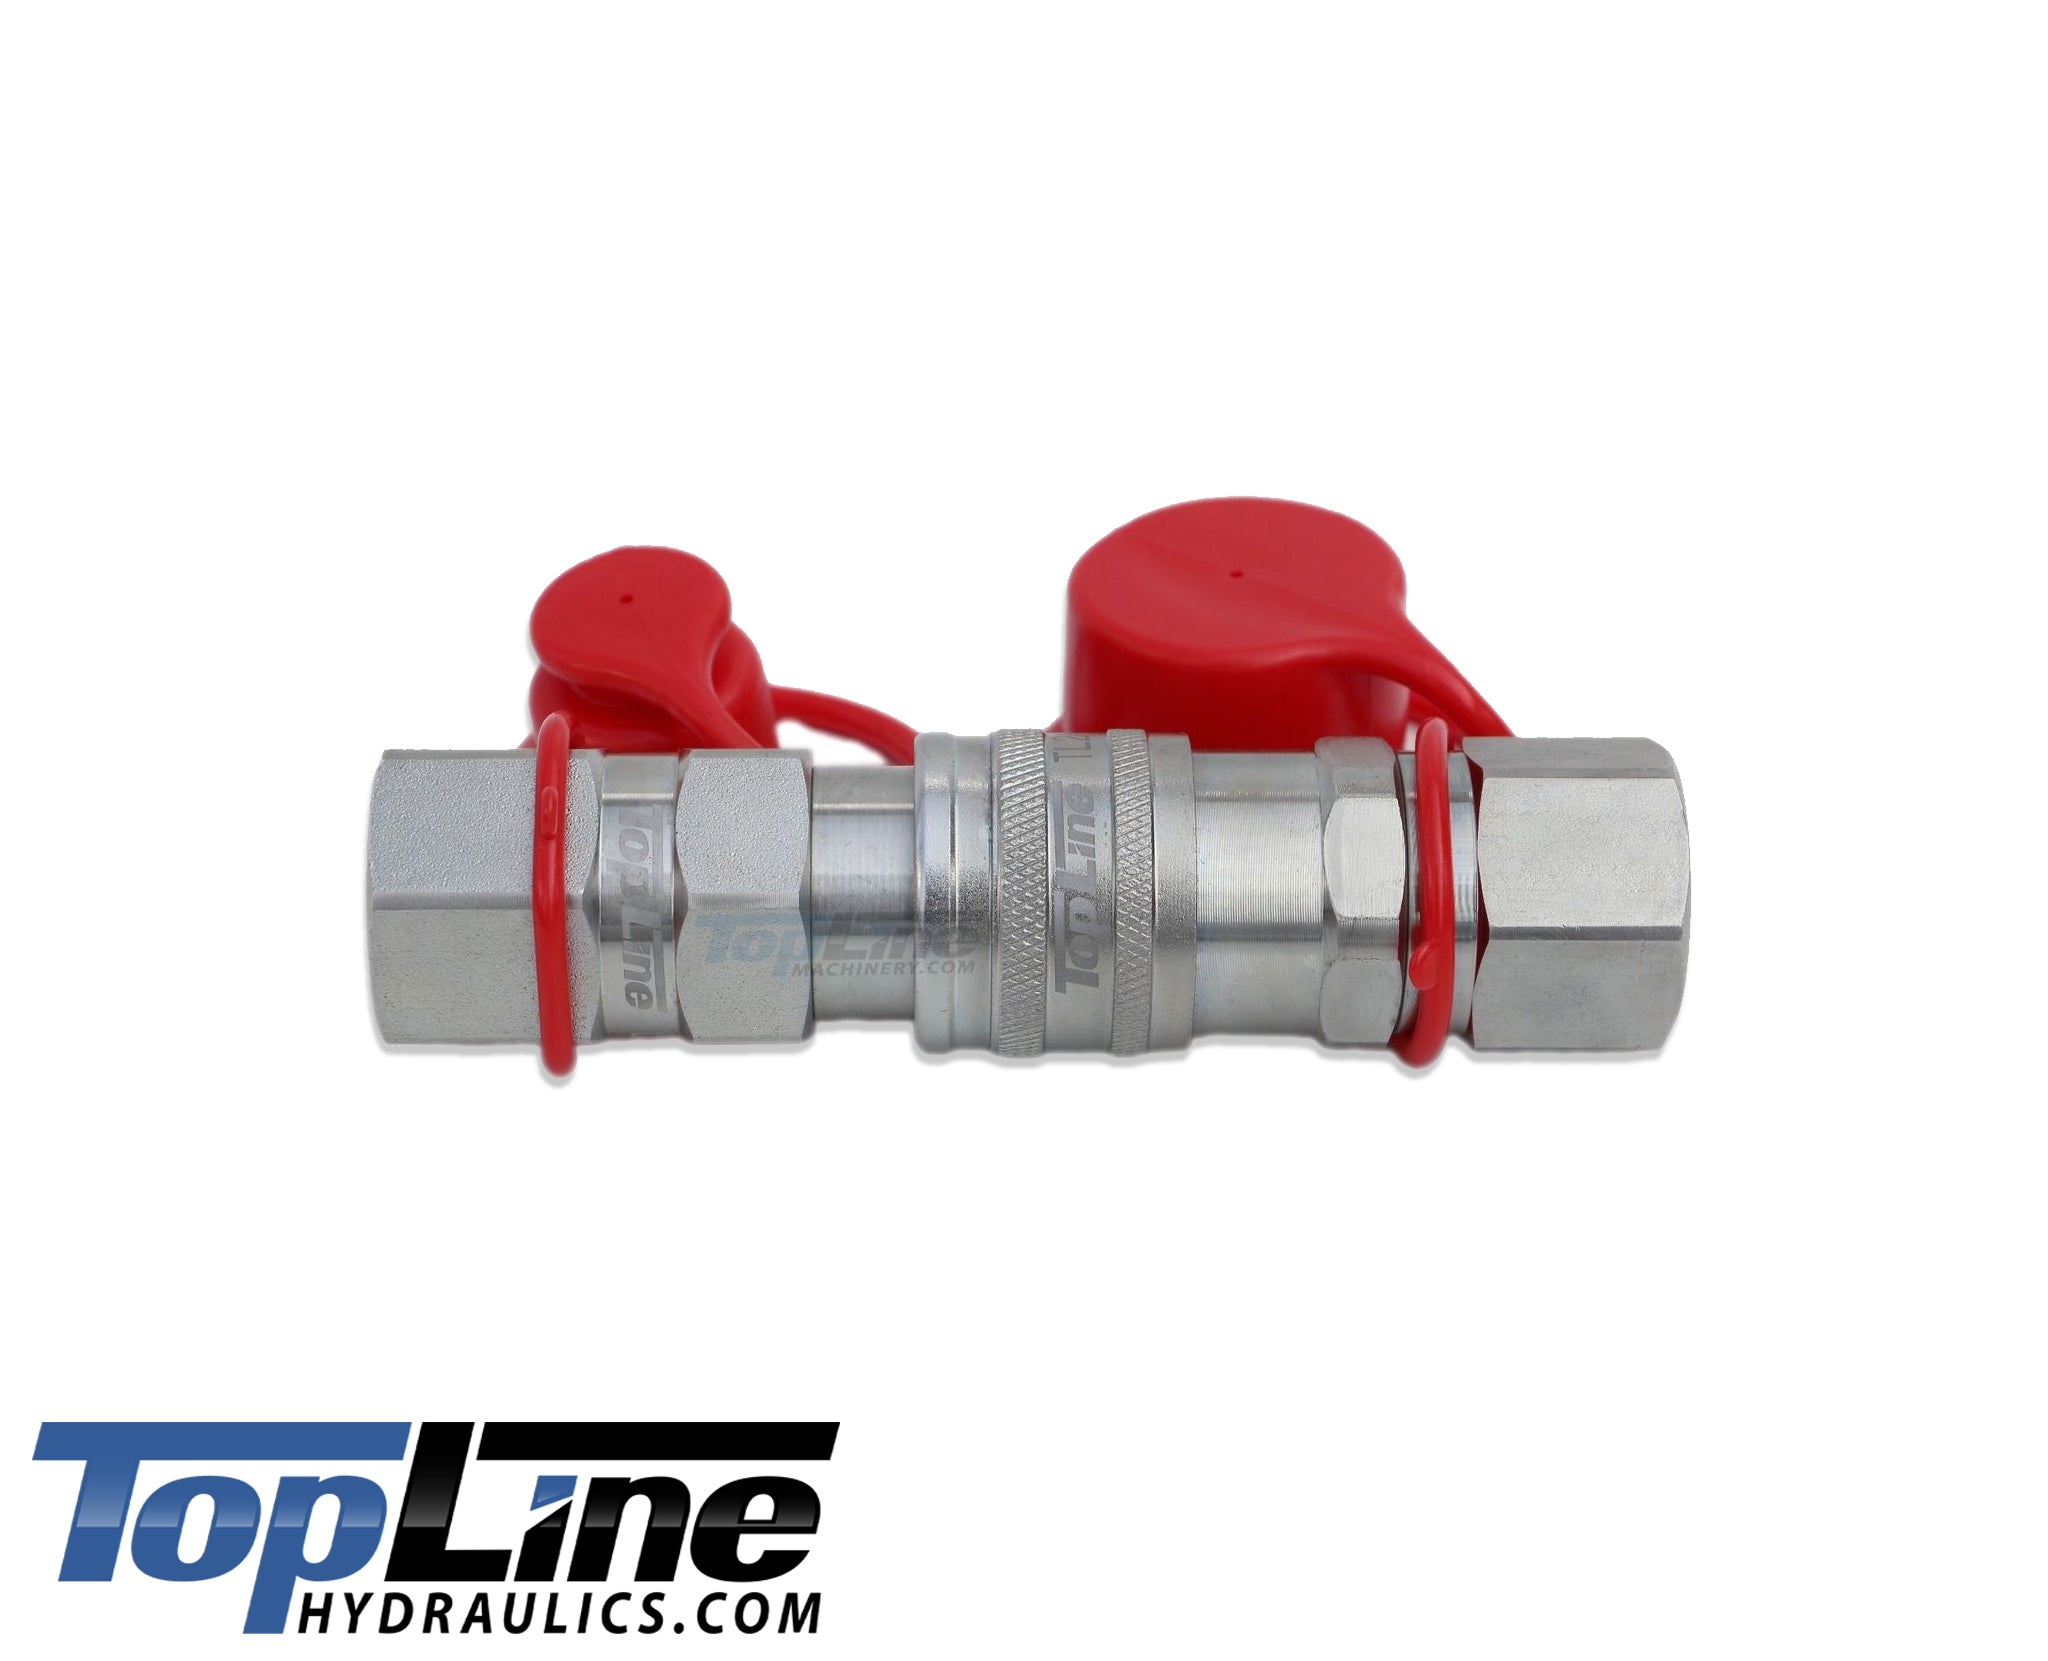 3//8 Flat Face Hydraulic Quick Connect Coupler Set w//Dust Caps 1//2 SAE Thread